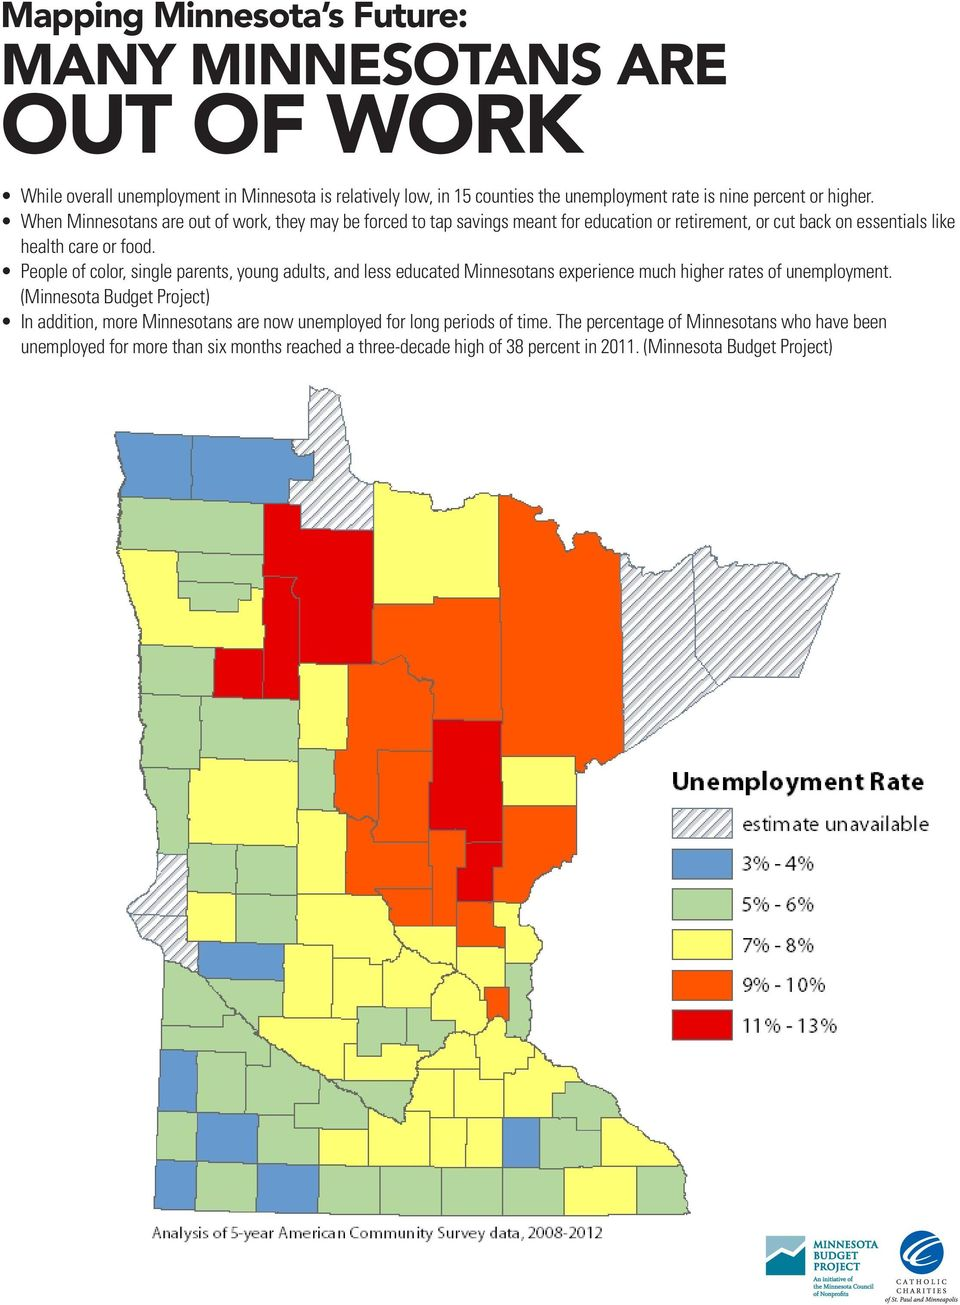 People of color, single parents, young adults, and less educated Minnesotans experience much higher rates of unemployment.